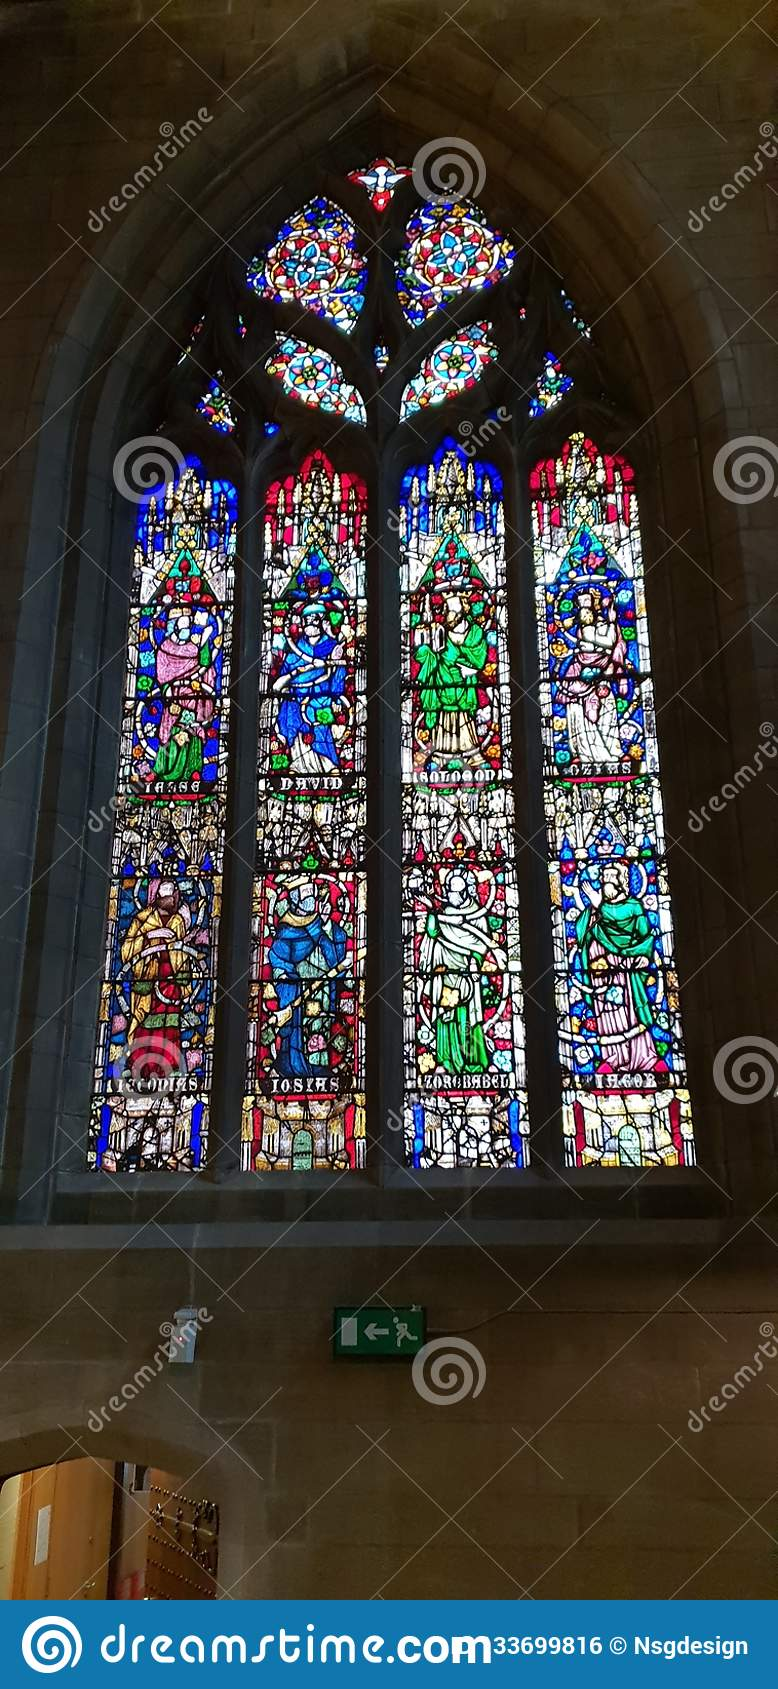 Large Stained Glass Window.Stained Glass Window Stock Photo Image Of Large Stained